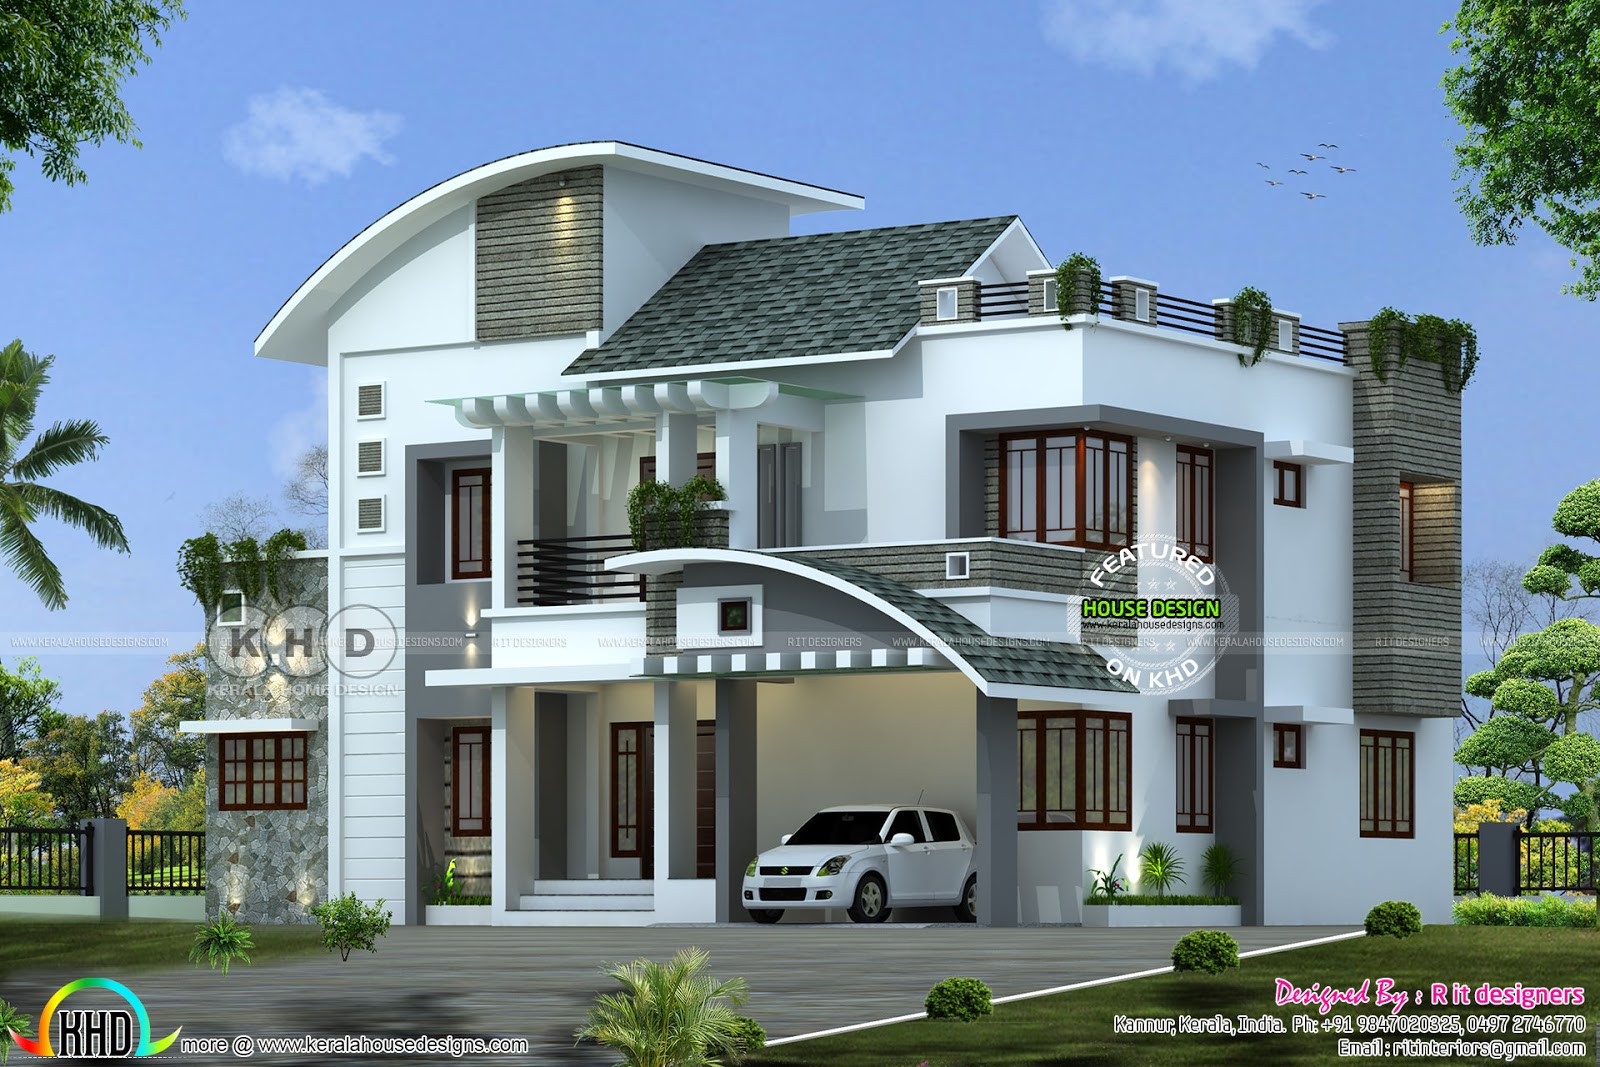 66 lakhs cost estimated 3111 sq ft home kerala home for Home designs com